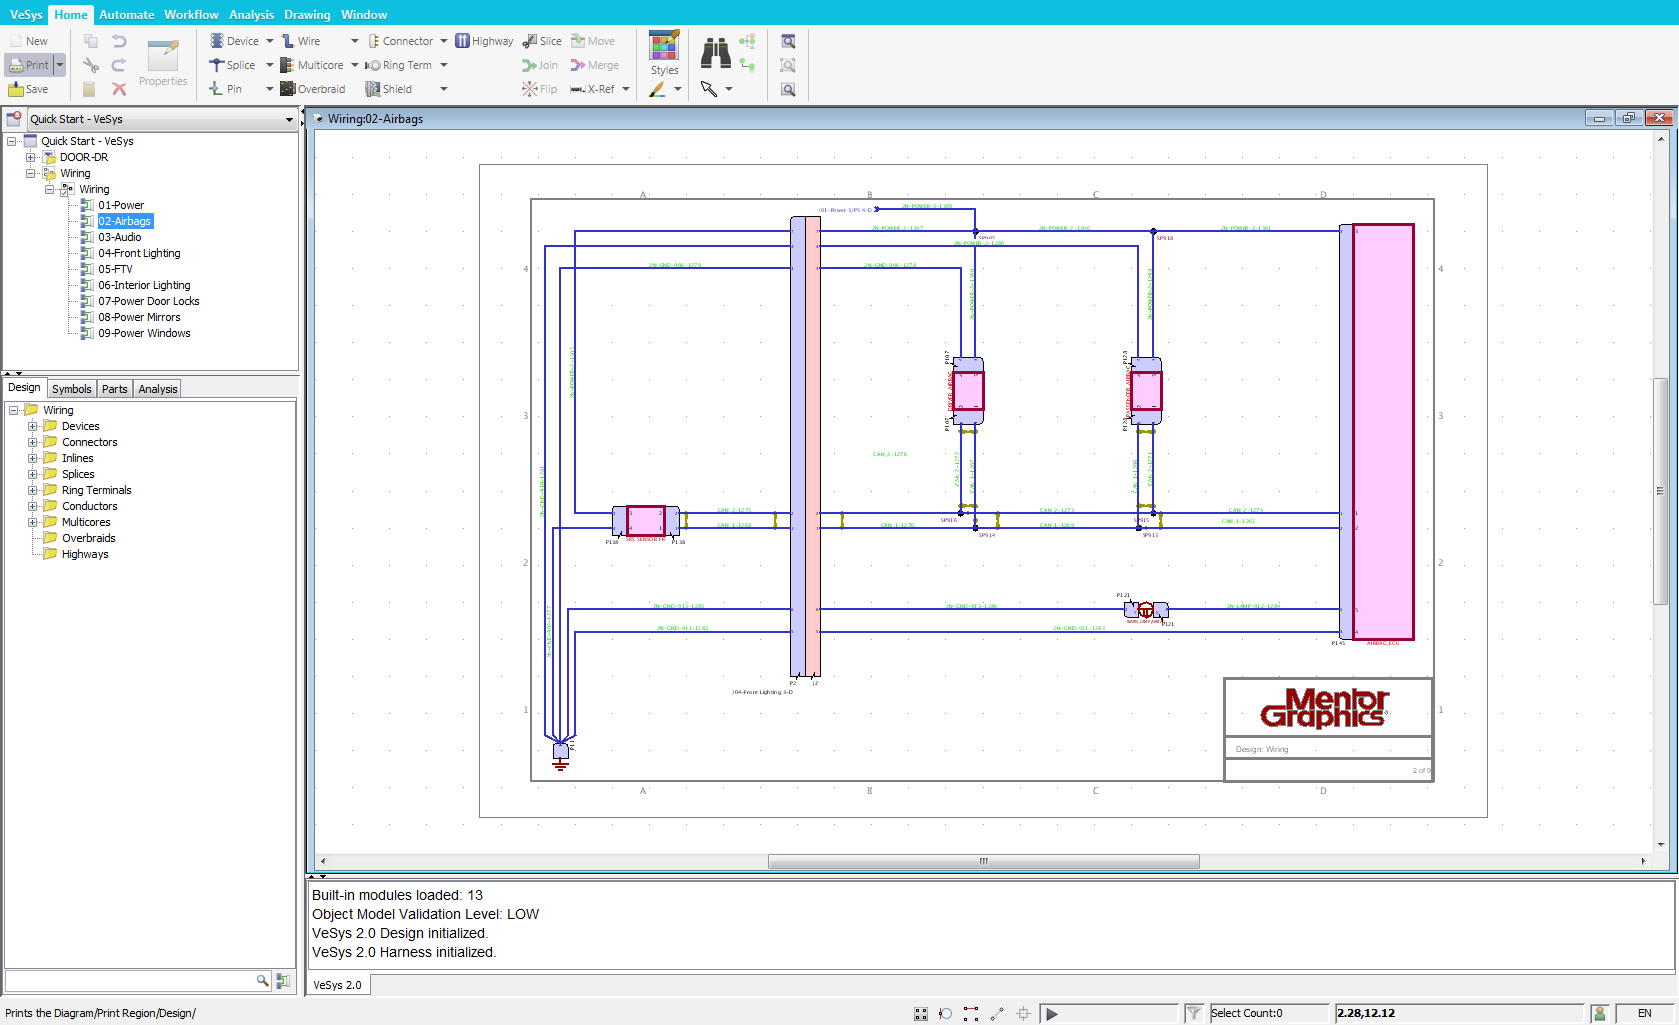 Vesys Design Mentor Graphics Circuit Builder Fuse Box Diagram Is Graphical Authoring Environment For Creating Vehicle Wiring Diagrams Via An Intuitive User Interface And Electrically Intelligent Symbols